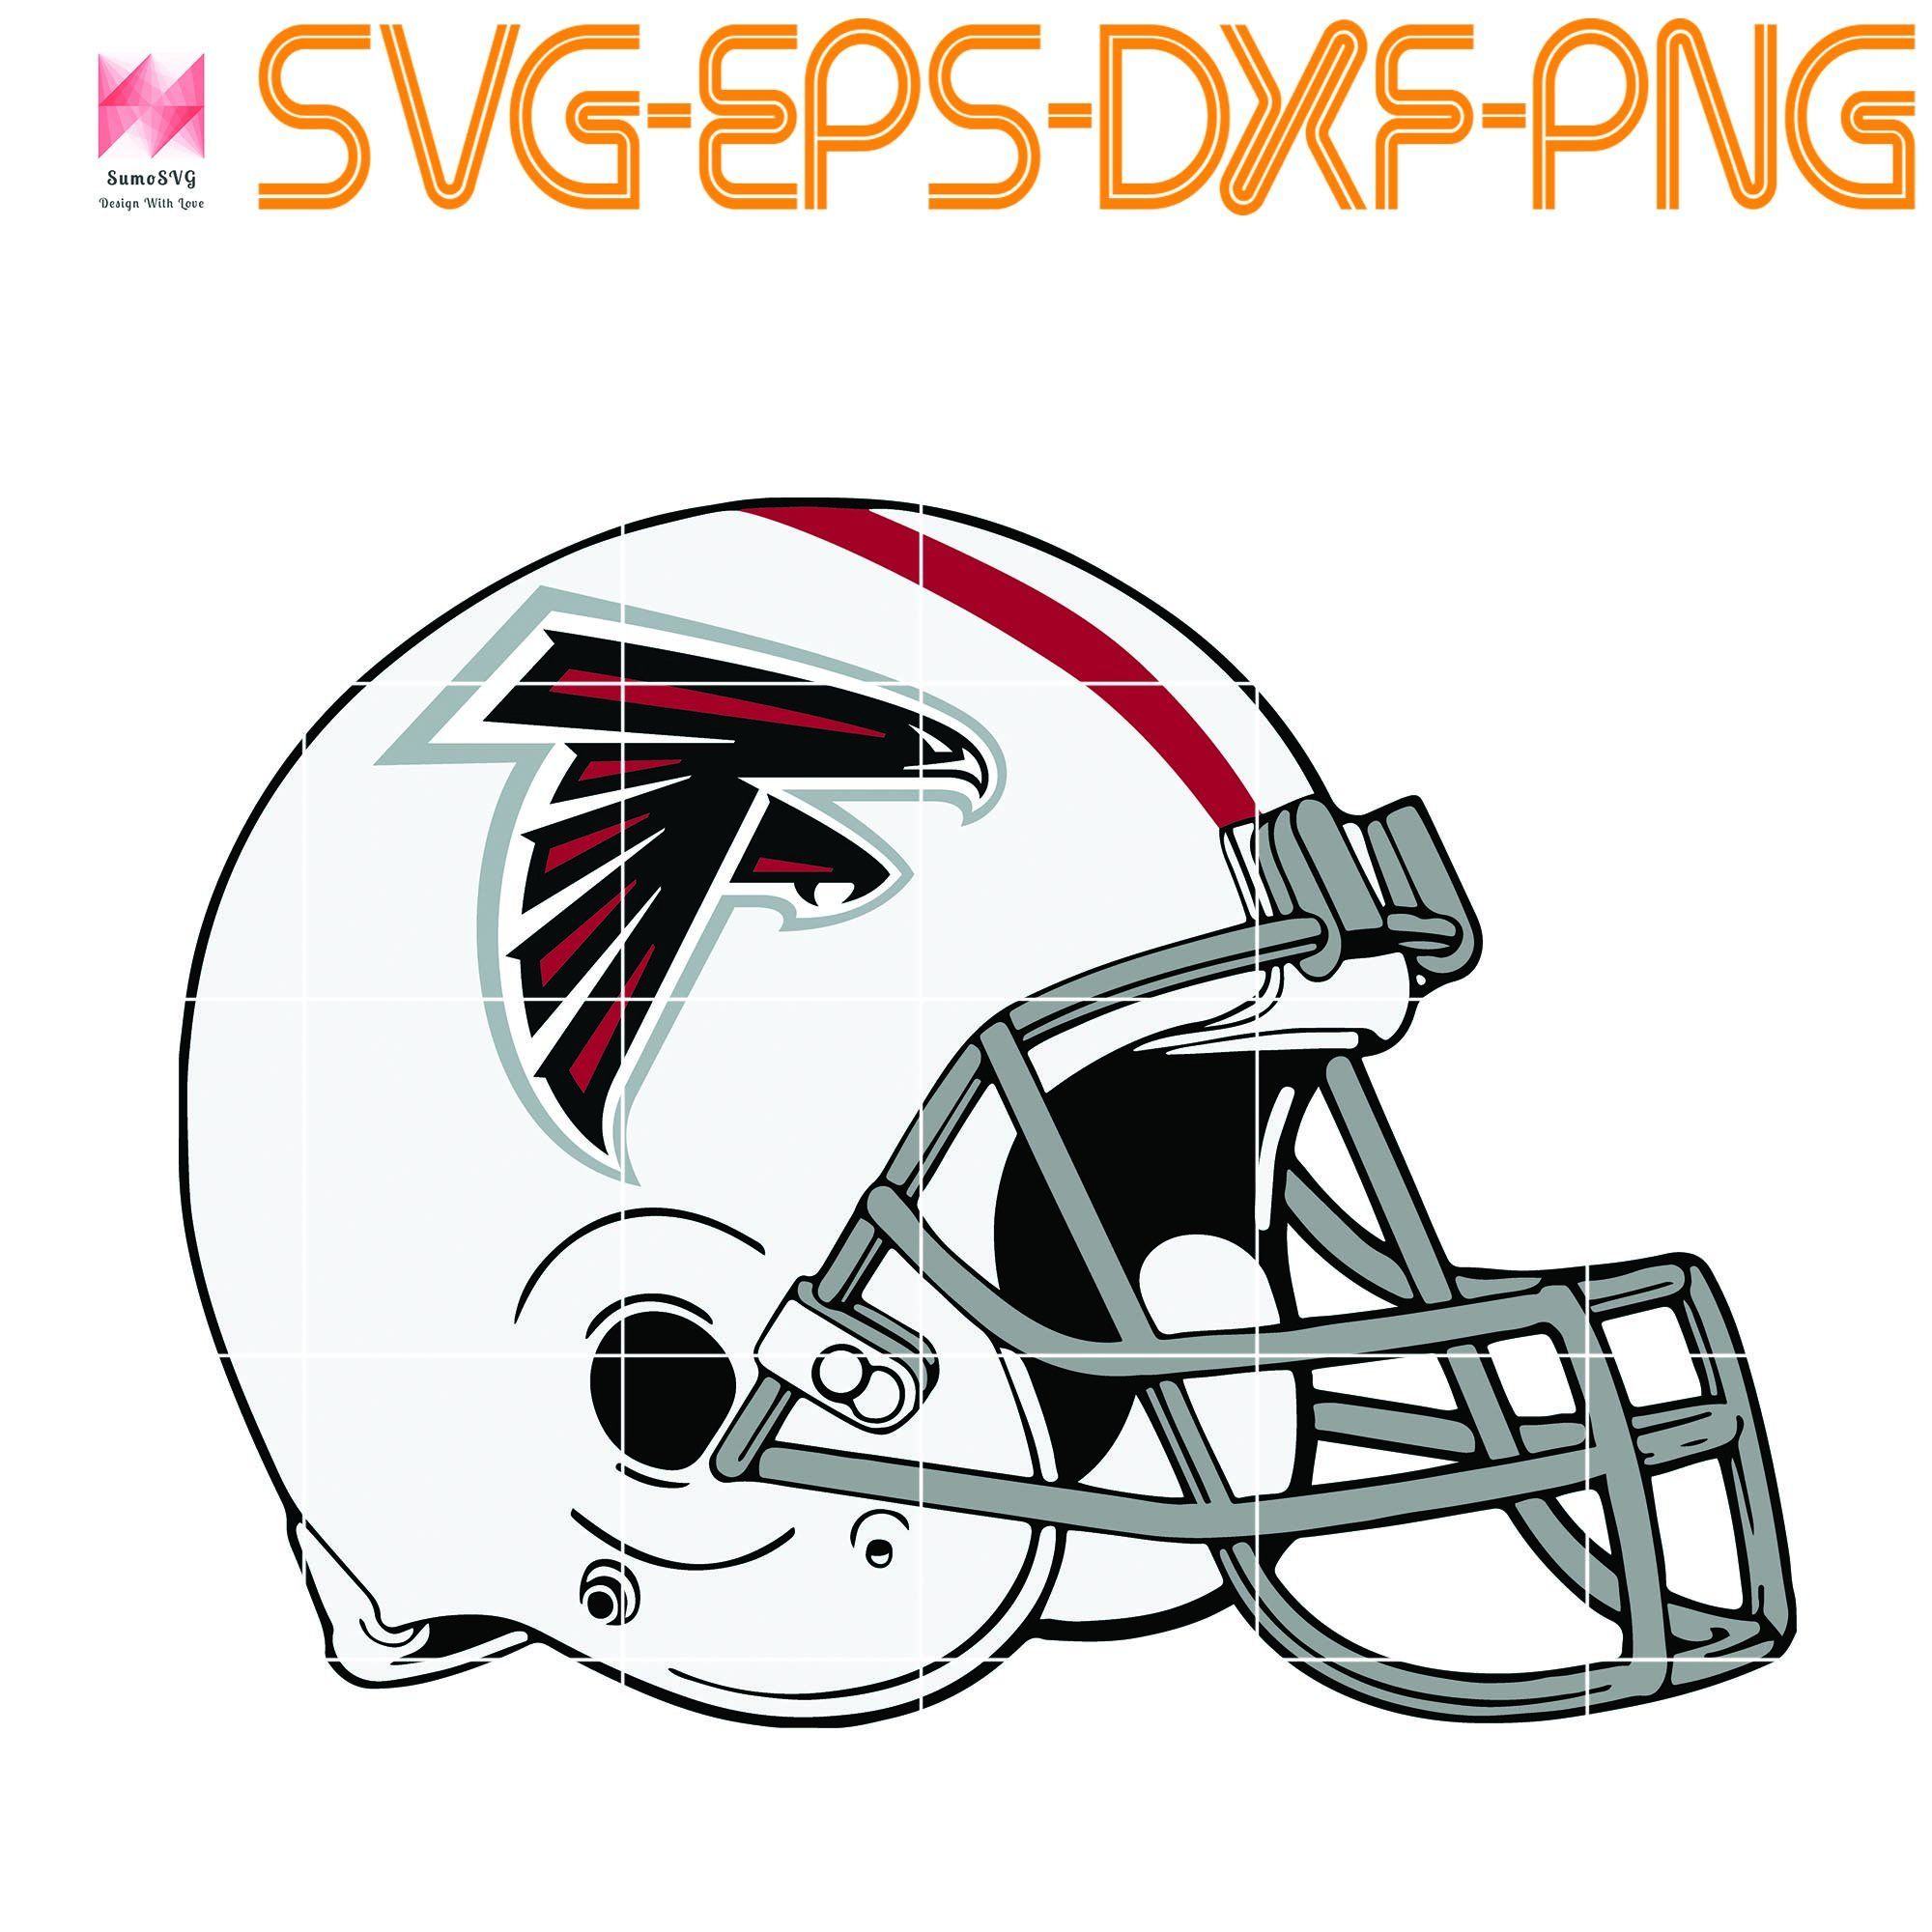 Atlanta Falcons Svg Falcons Girl Svg Falcons Svg Falcons Boy Svg Nfl Svg Football Svg Falcons Mom Svg Dna Fueled By Haters Lip Skull Svg Eps Dxf In 2020